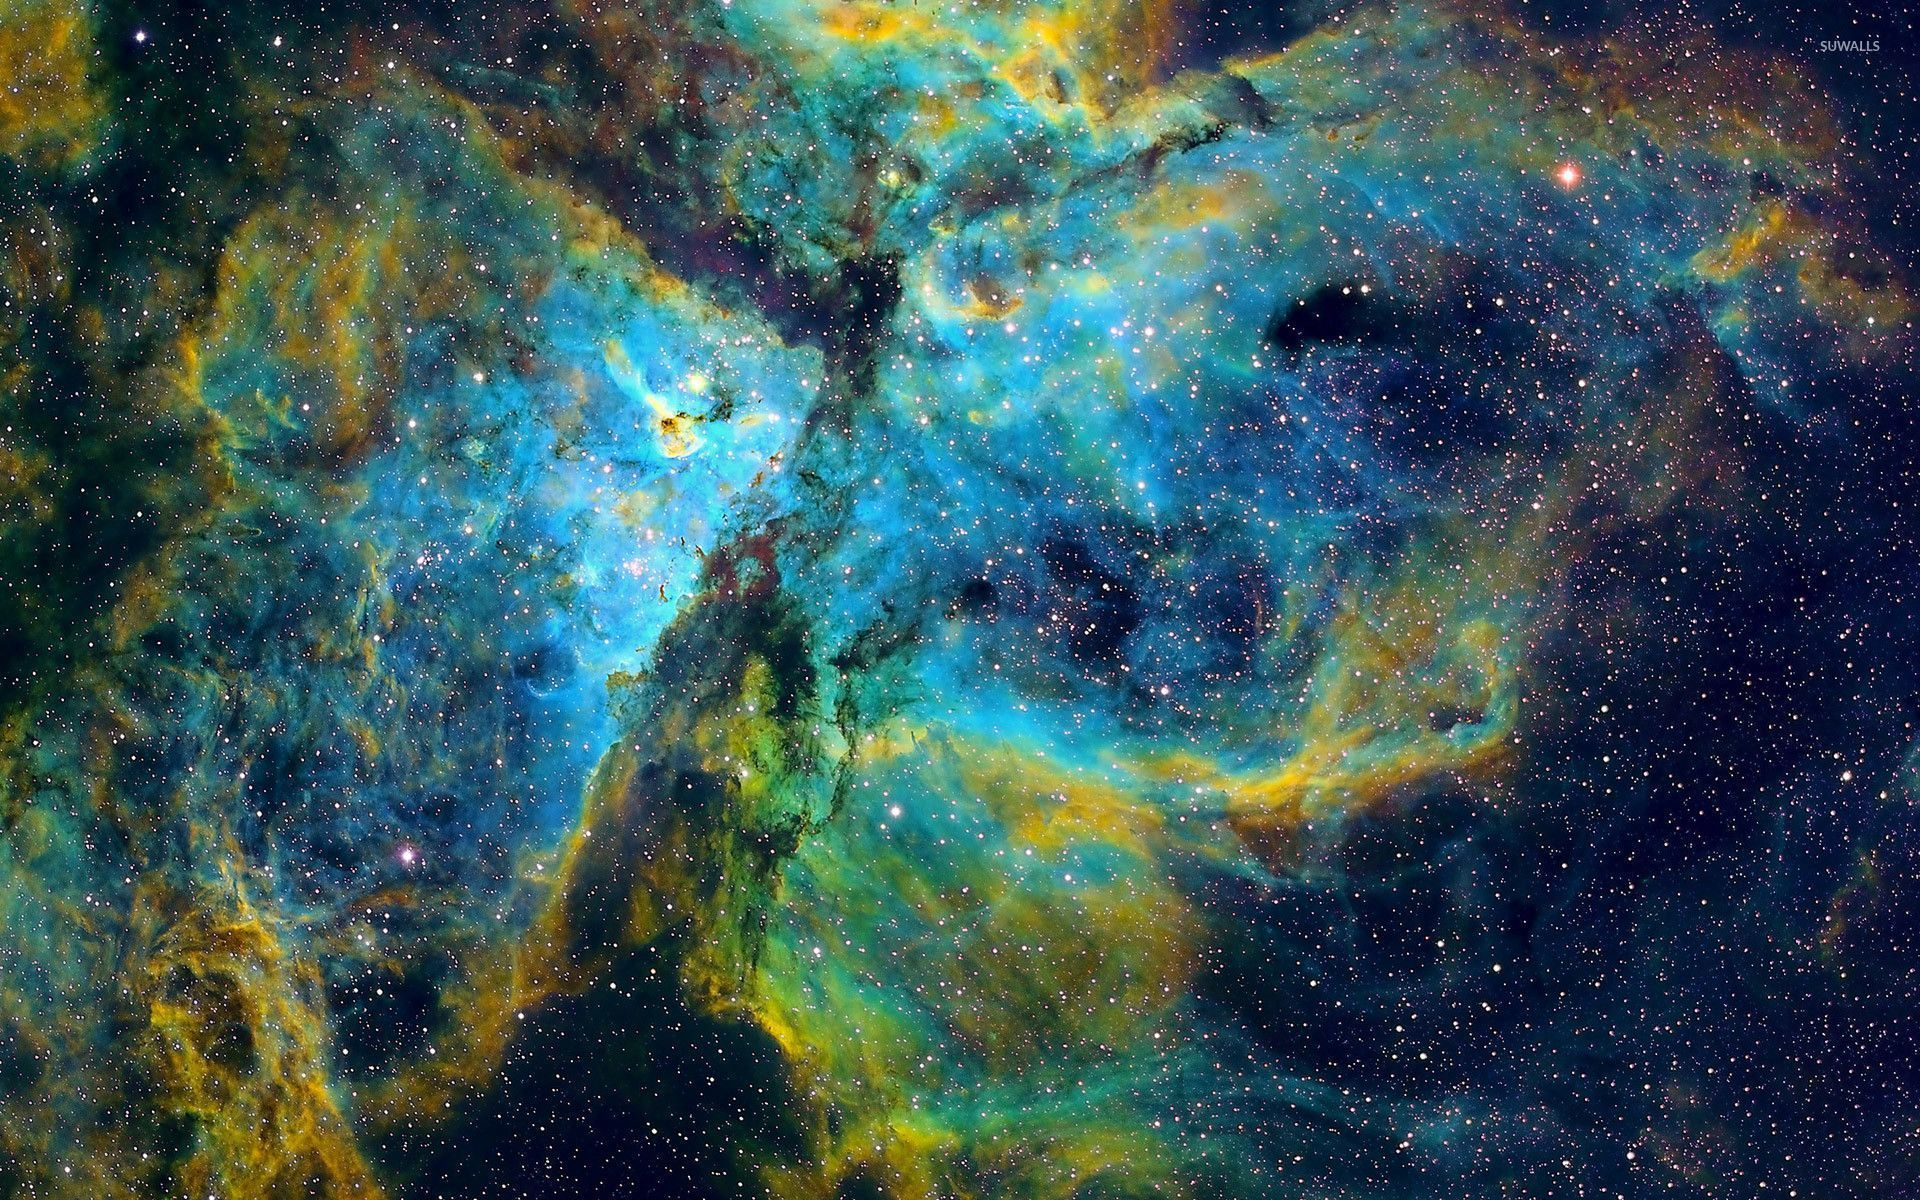 Sunrise Wallpapers With Quotes Beautiful Carina Nebula Wallpaper Space Wallpapers 53654